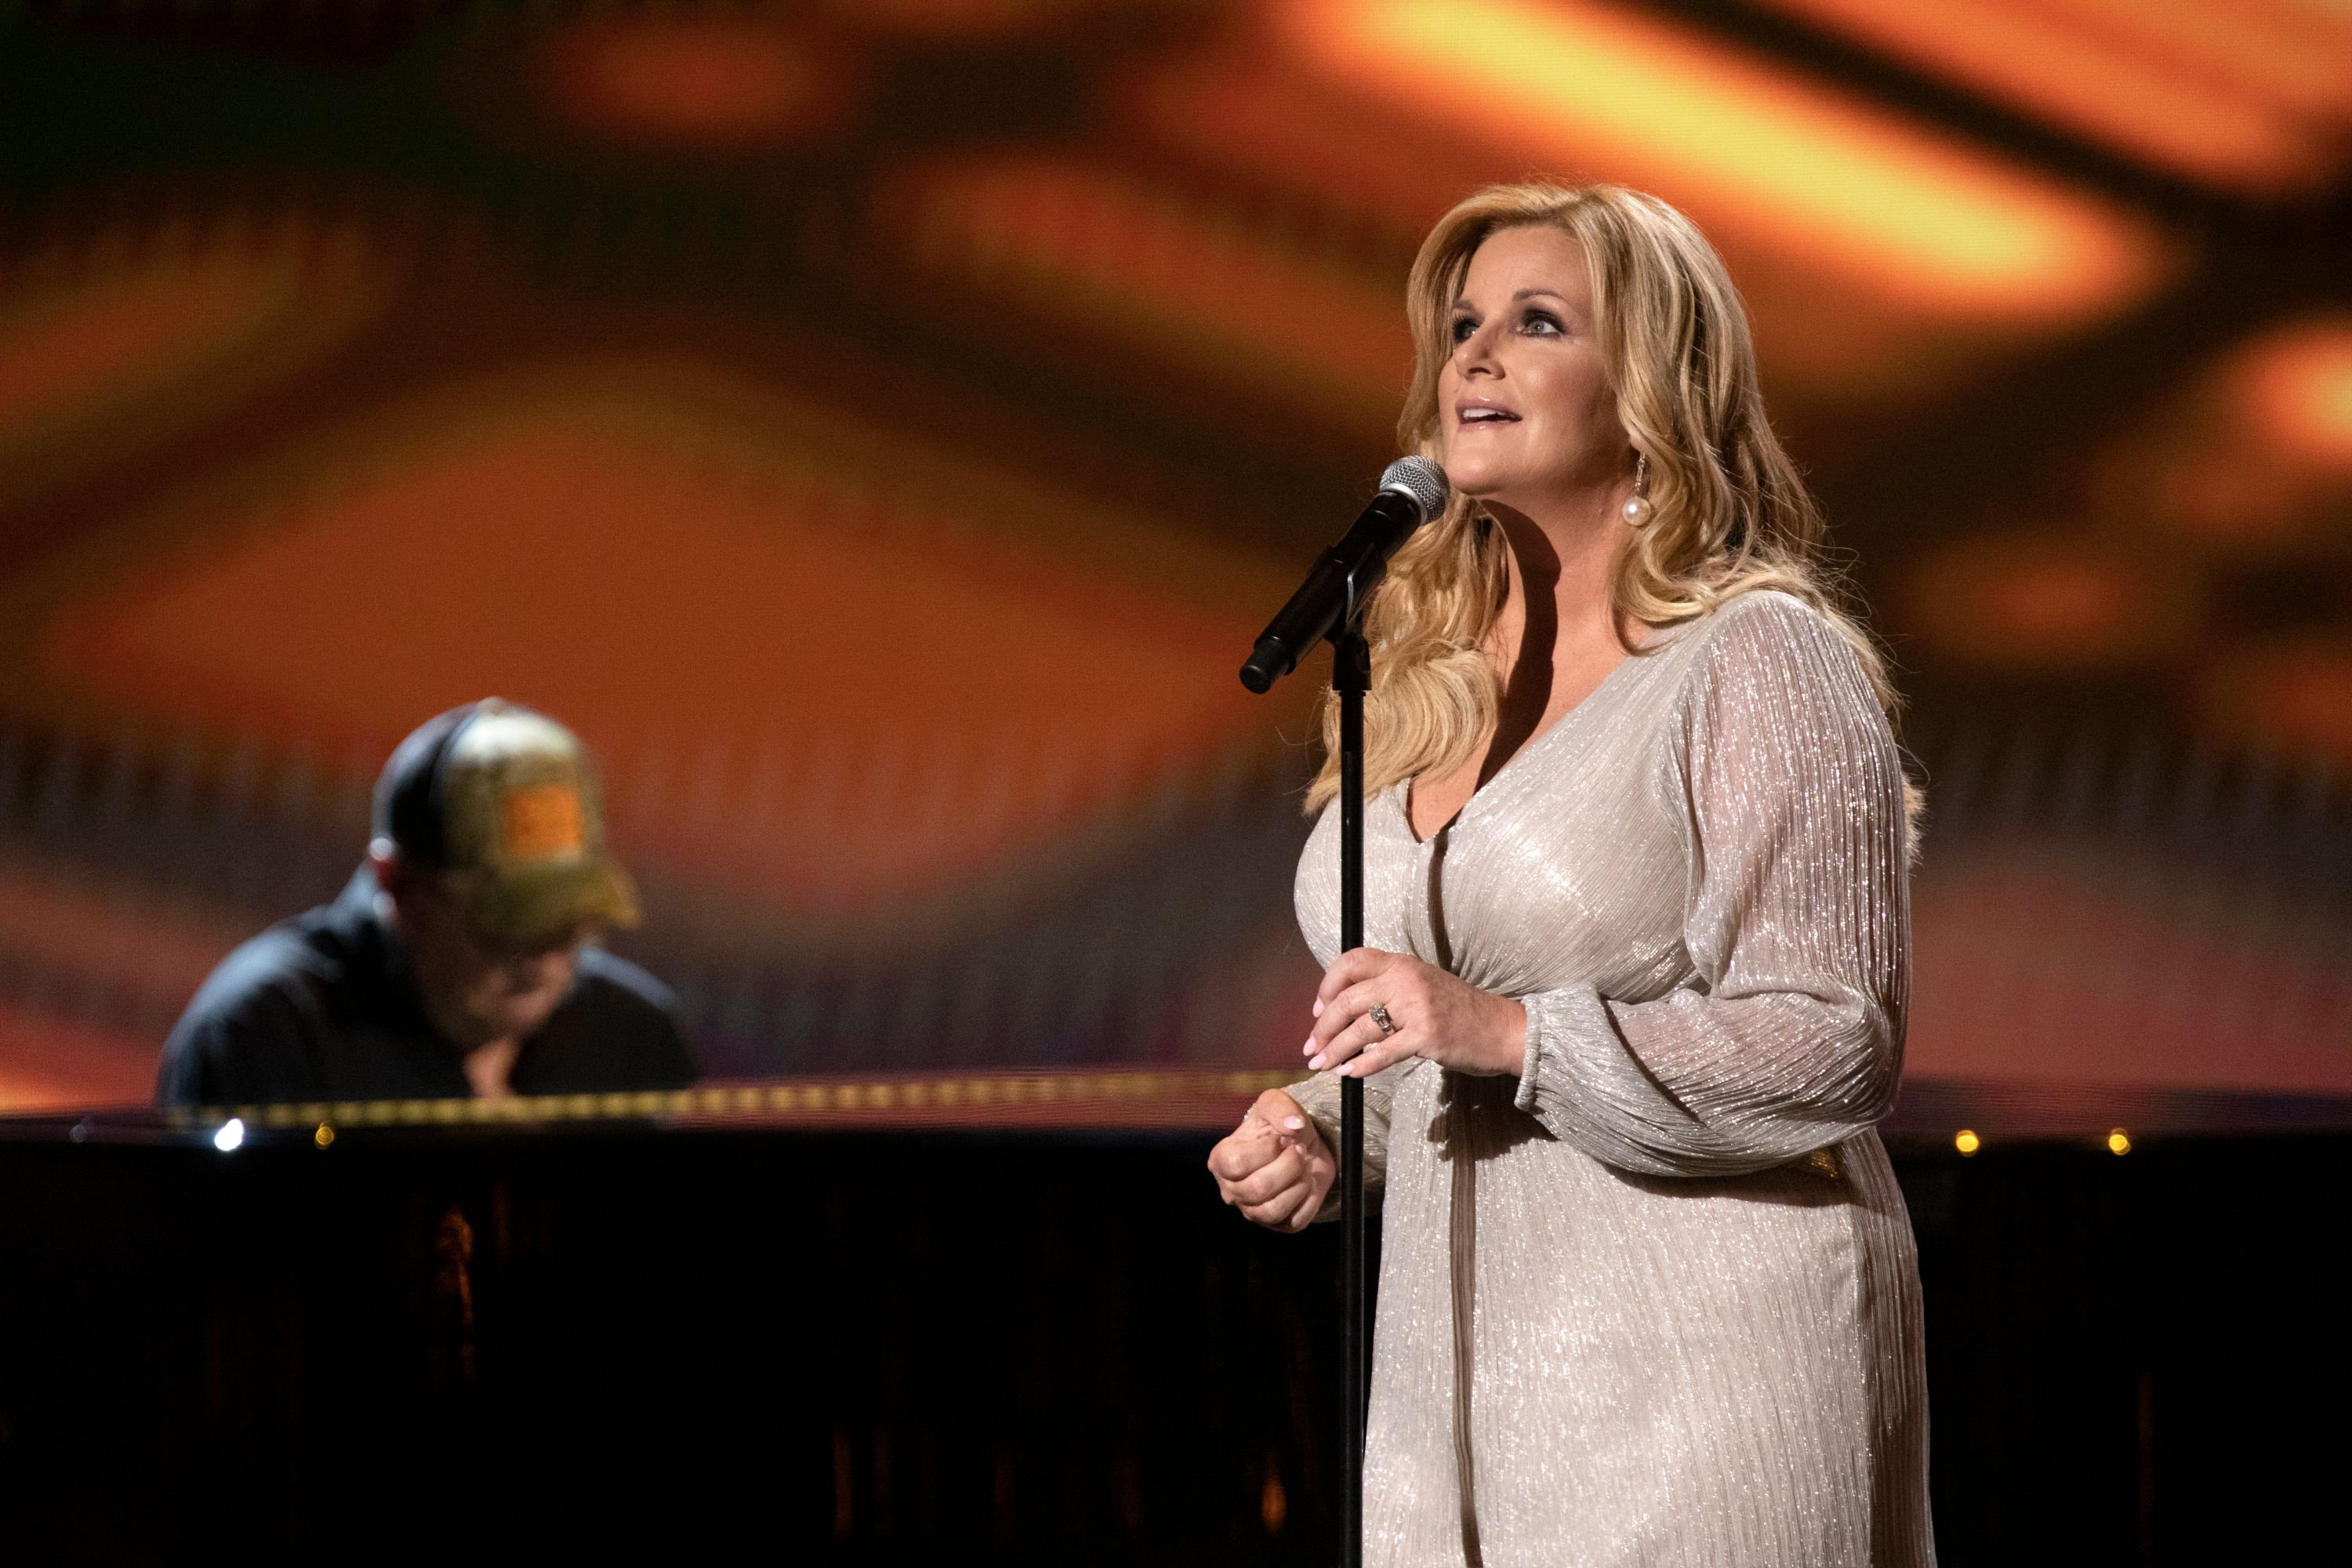 Trisha Yearwood at the 55th Academy of Country Music Awards in 2020 in Nashville, Tennessee | Photo: Getty Images